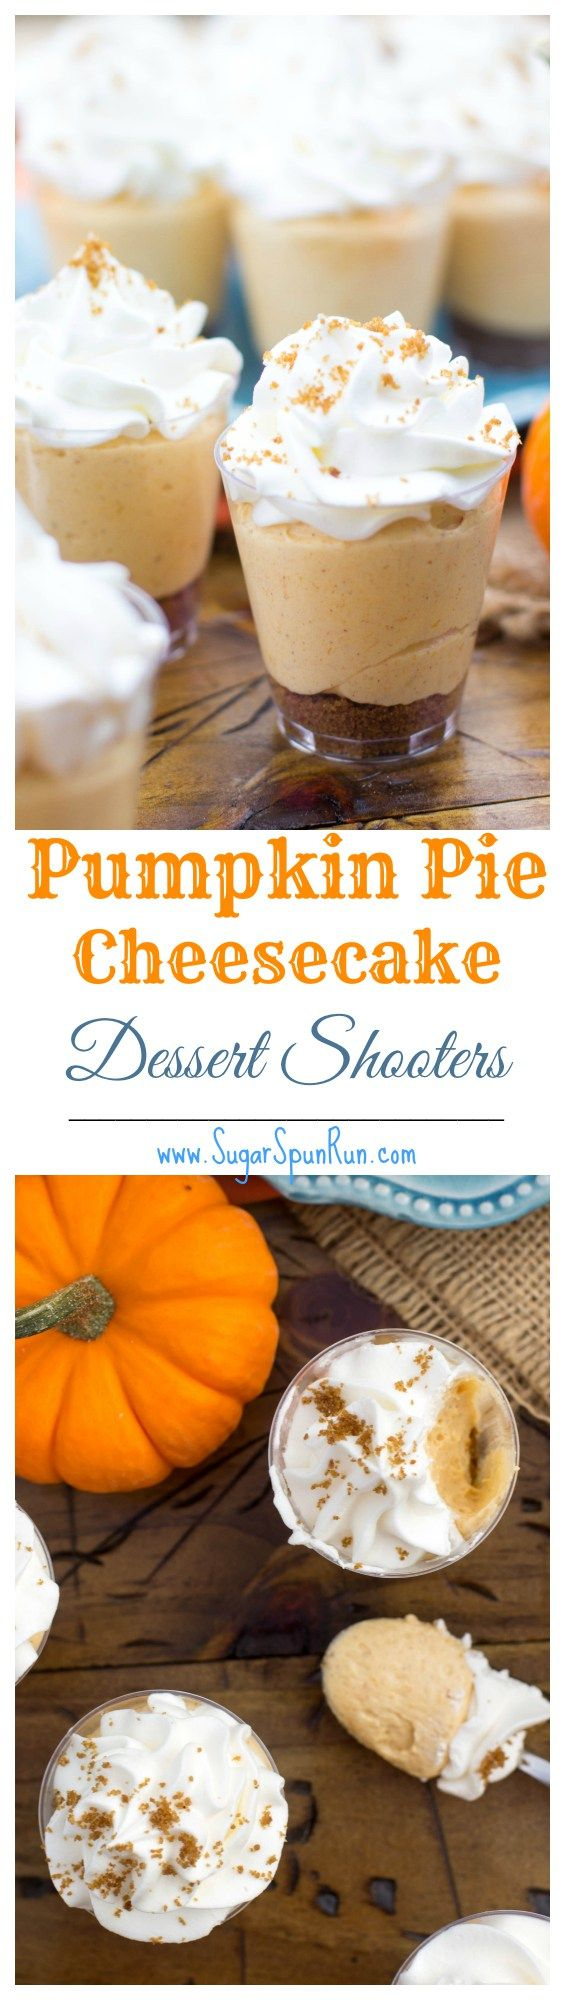 Best 25+ Pumpkin pie cake ideas on Pinterest | Pumpkin pie muffins ...